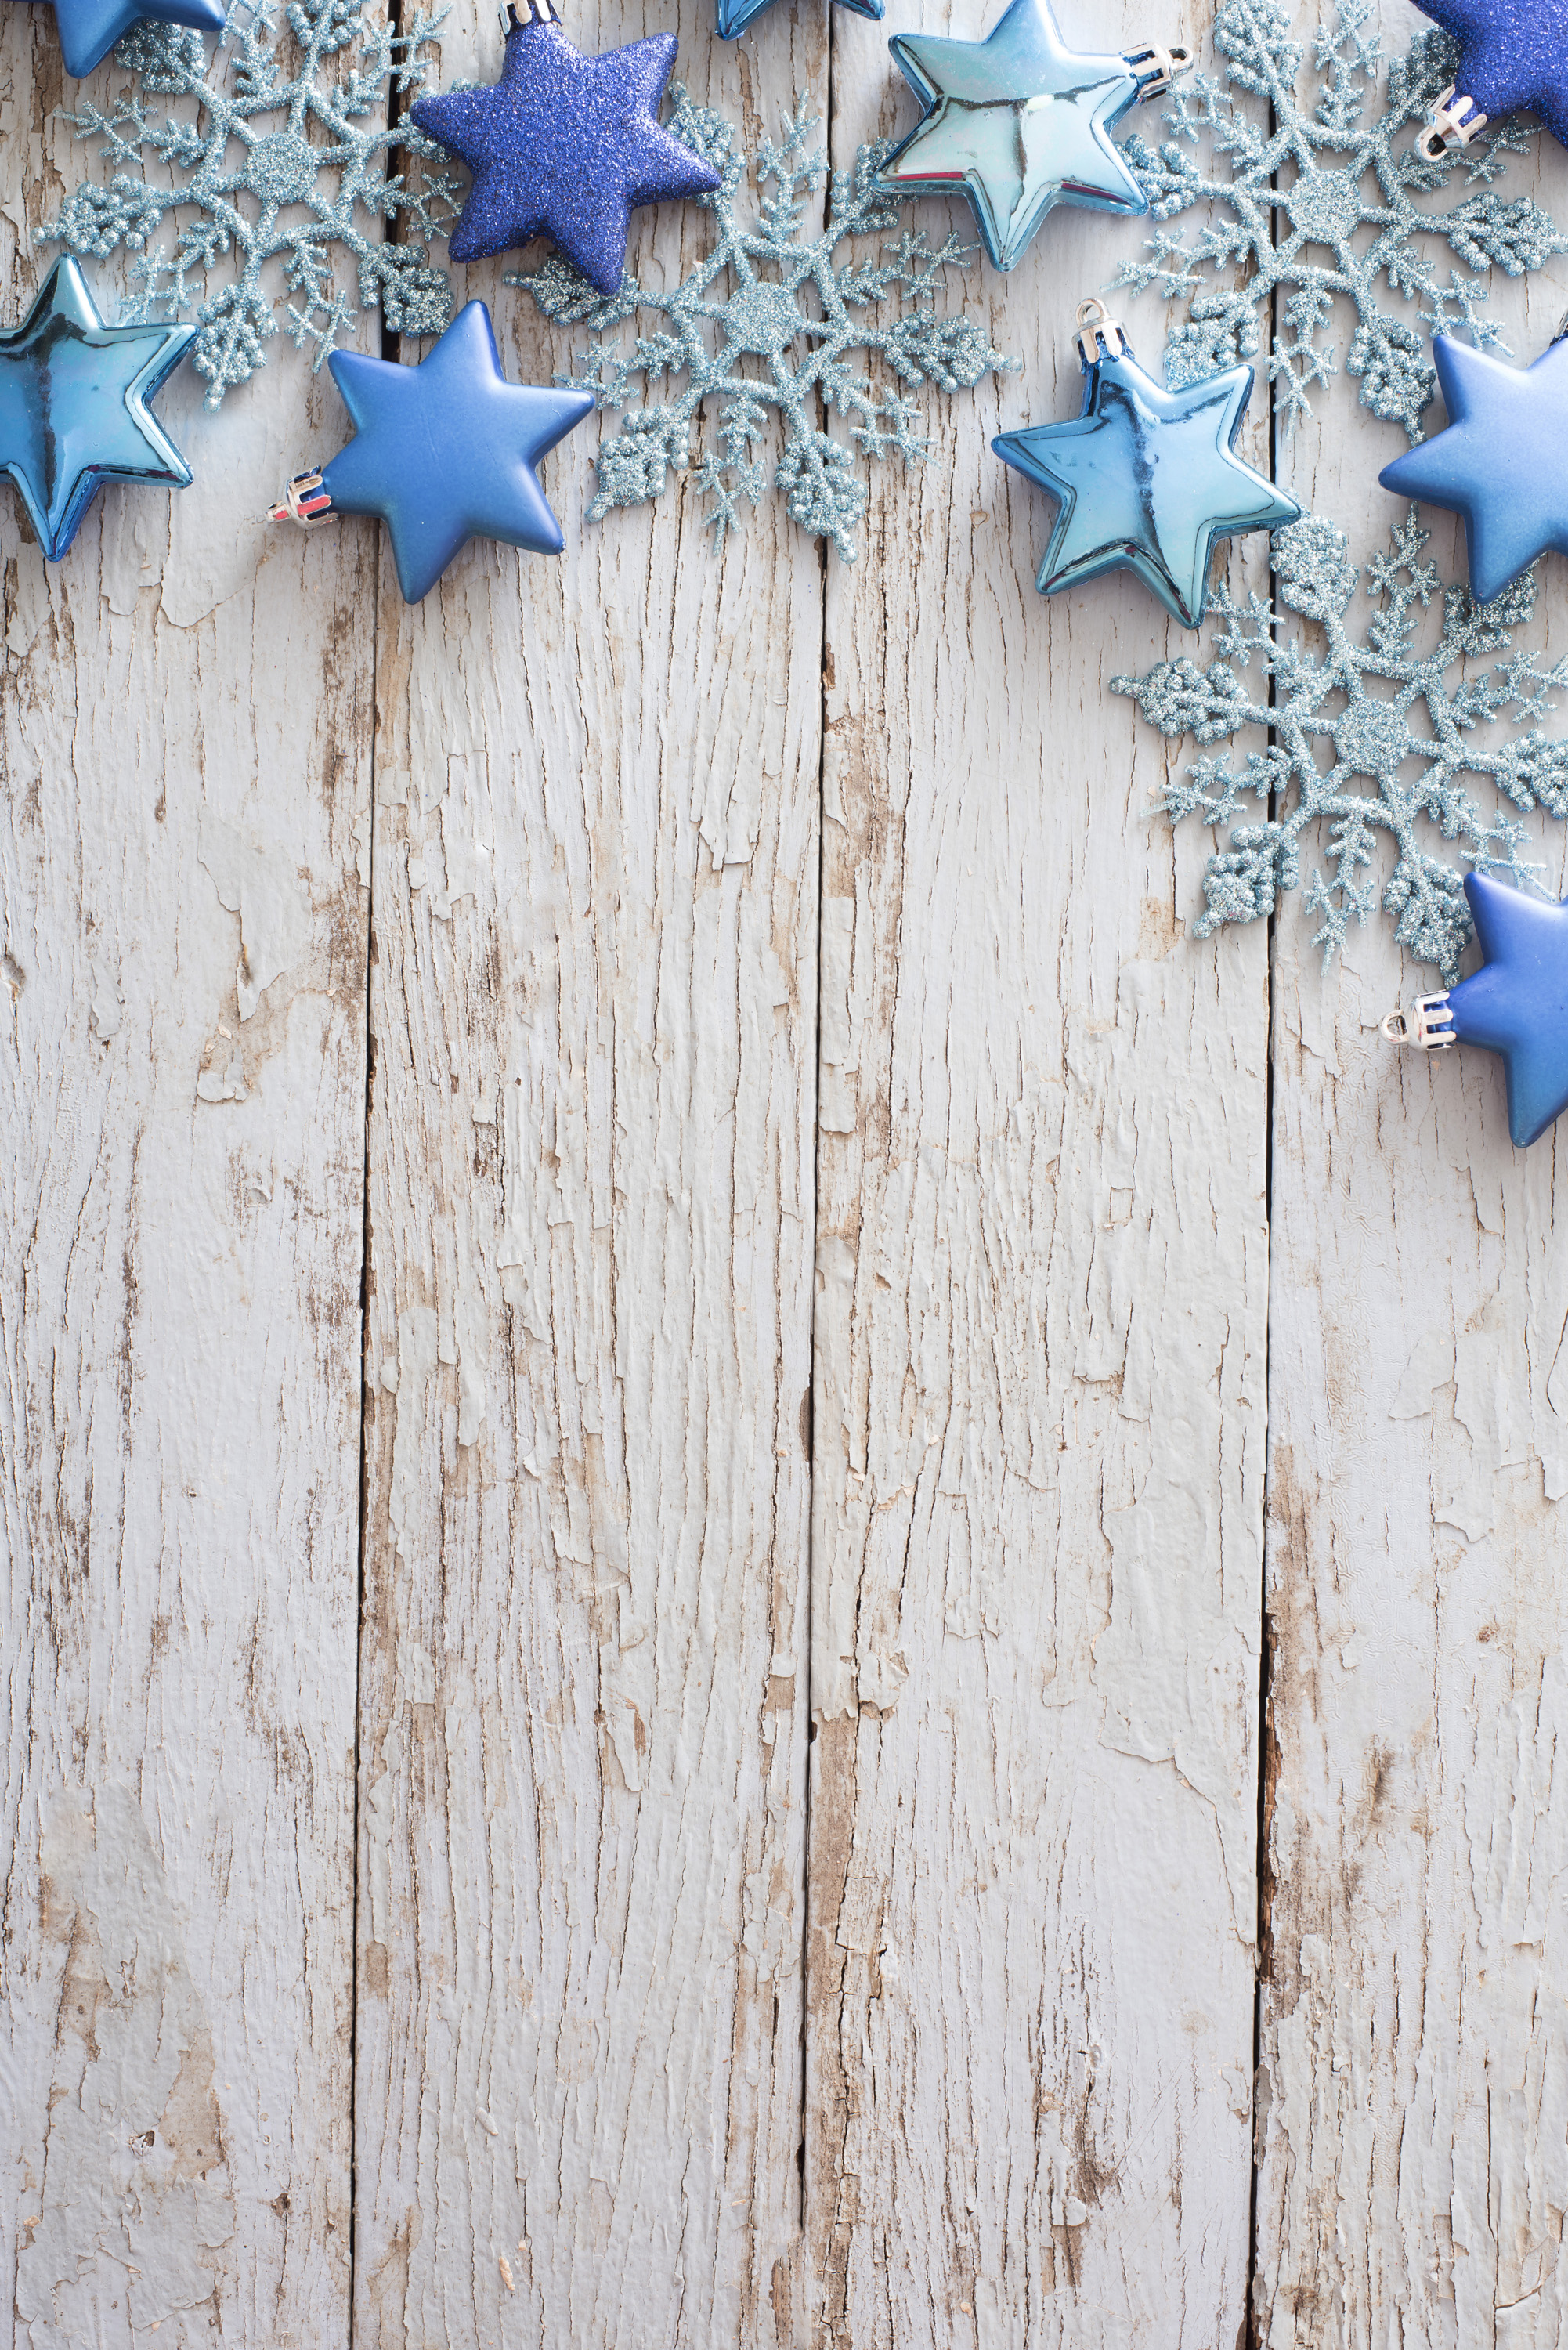 Border of blue Christmas ornaments with glitter snowflakes and stars on rustic white wood with cracks, peeling paint and copy space